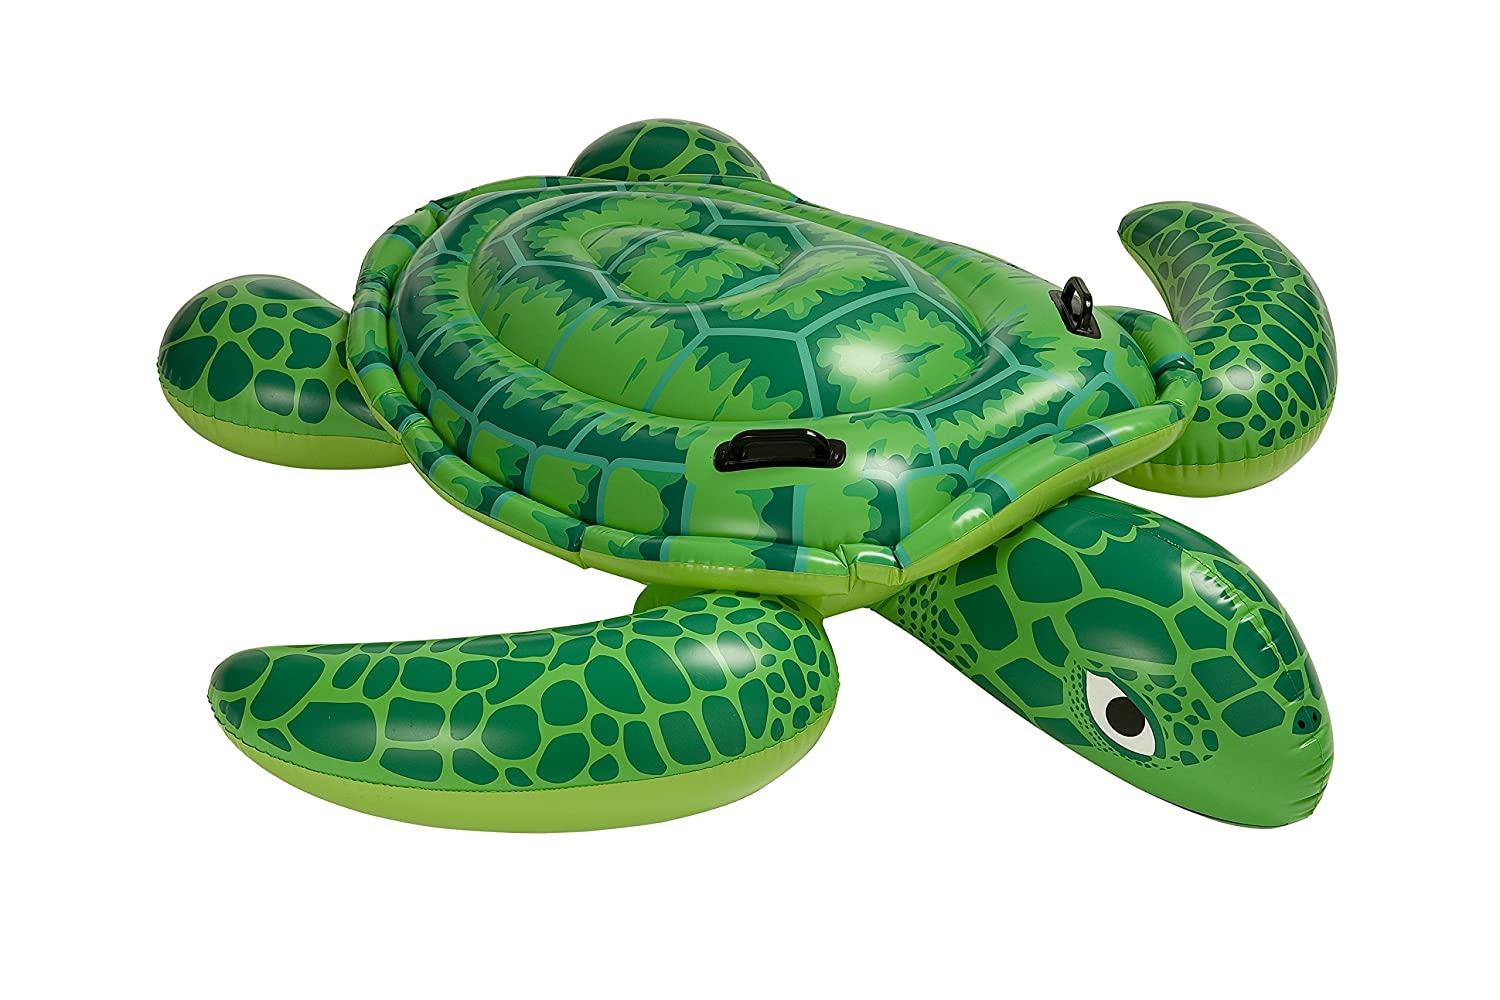 Intex - Tortuga Hinchable, 191 x 170 cm (56524NP): Amazon.es: Bebé